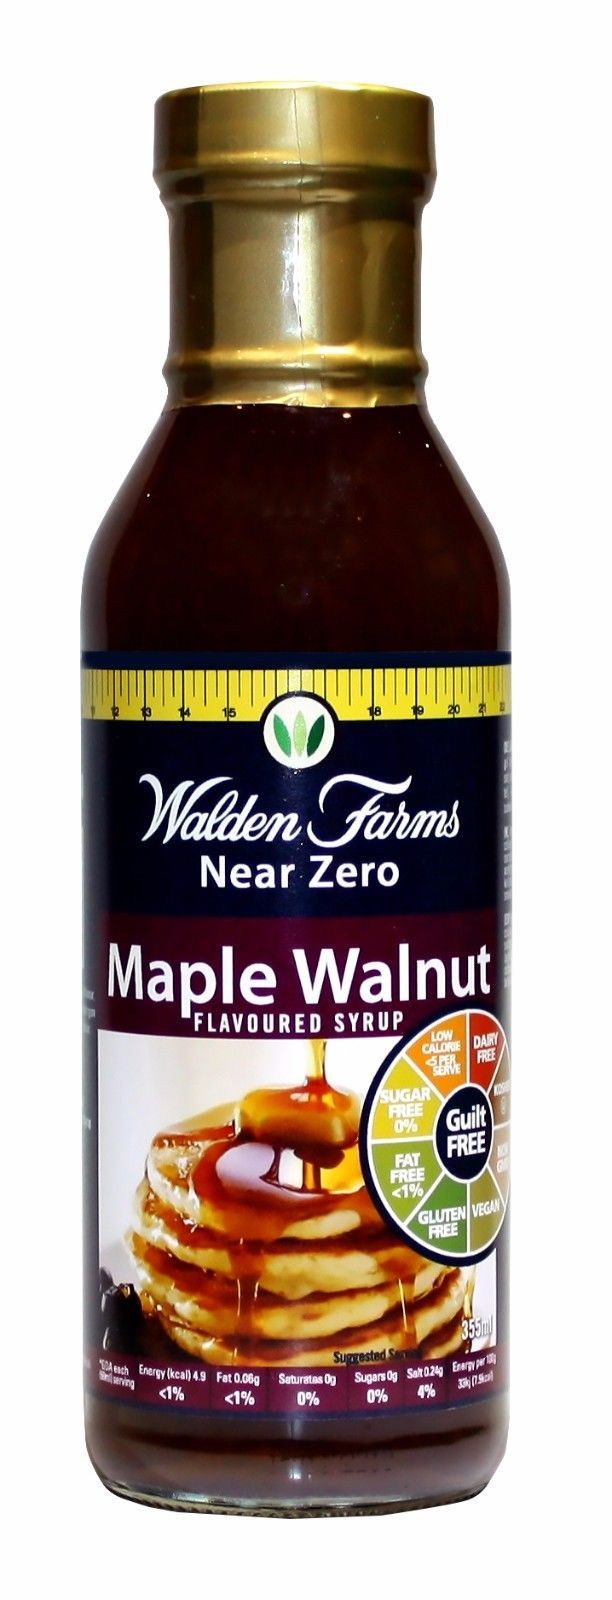 """Walden Farms Near Zero Calorie Maple Walnut Syrup.""  http://www.heroesfitness.co.uk/?shop=shopitems%2Fnew.year.gym.supplement.special.offers.deals.and.discounts%2Fwalden.farms.near.zero.calories.shop%2Fwalden.farms.near.zero.calorie.maple.walnut.syrup.waldenmapwalsyrup.aspx  #healthy #fitness #motivation #health #workout #eatclean #fitfam #fit #gym #lifestyle #bodybuilding #exercise #training"